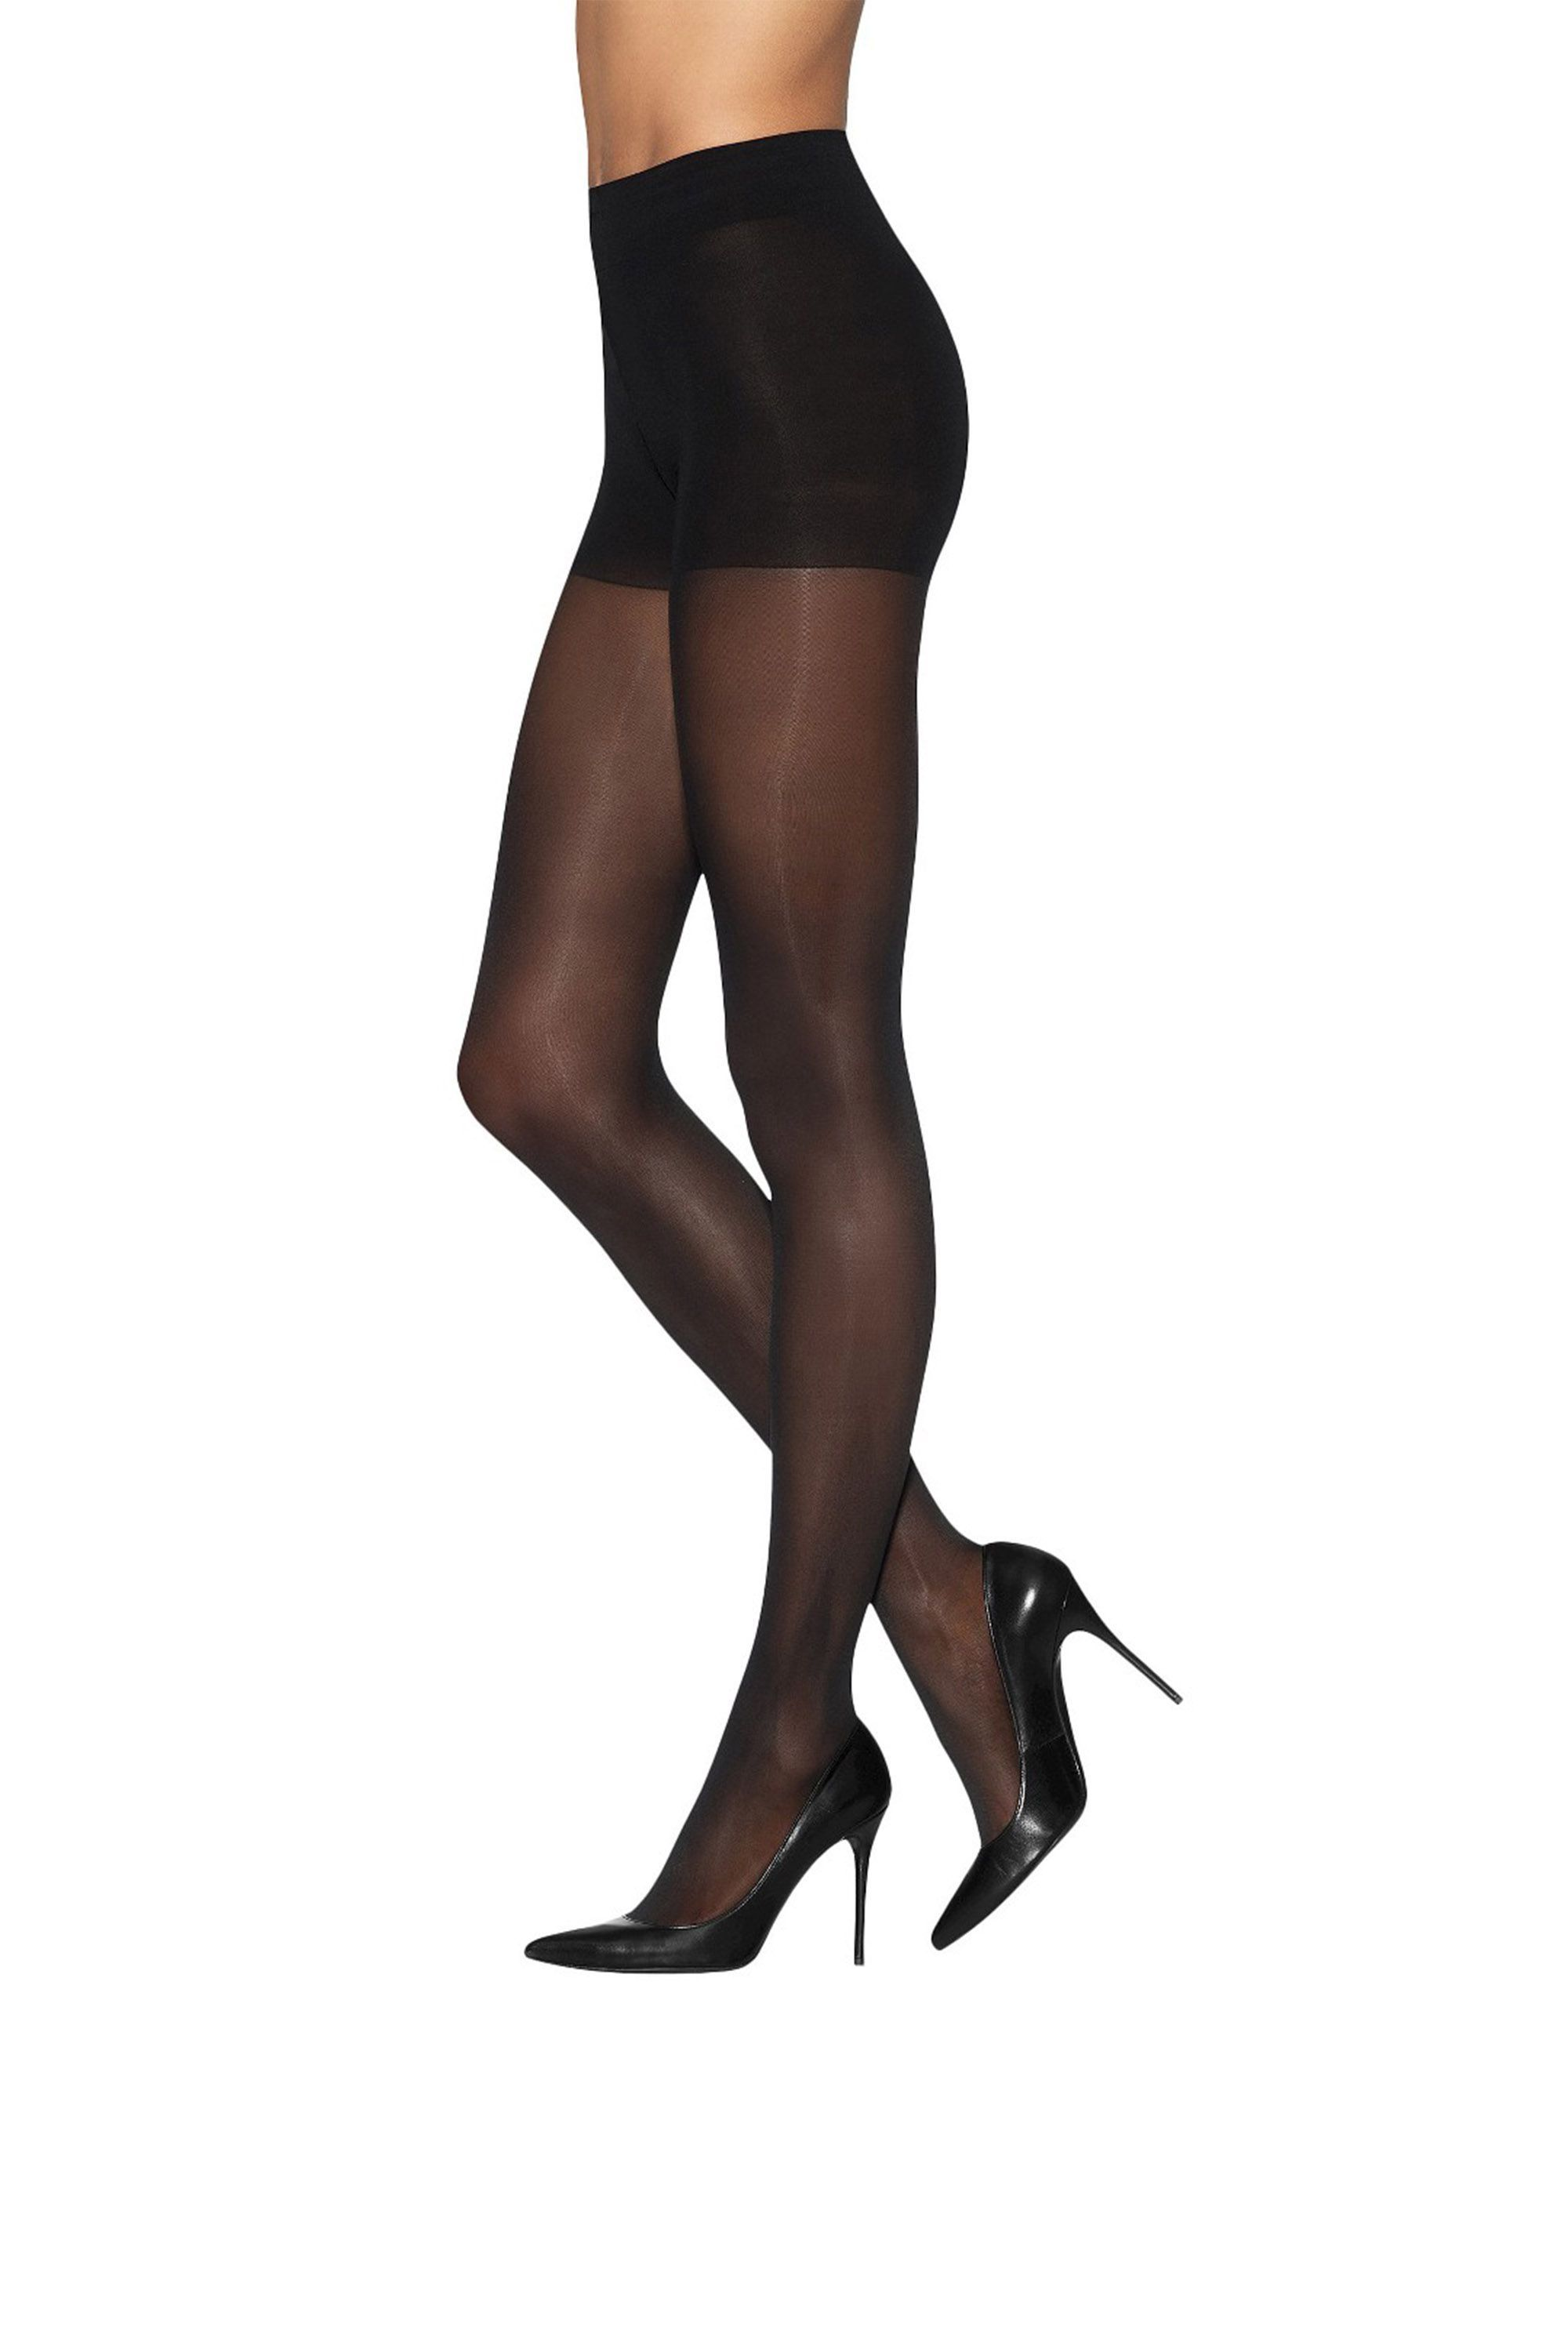 d96b69beba611 Best Black Tights for Winter and Cold Weather